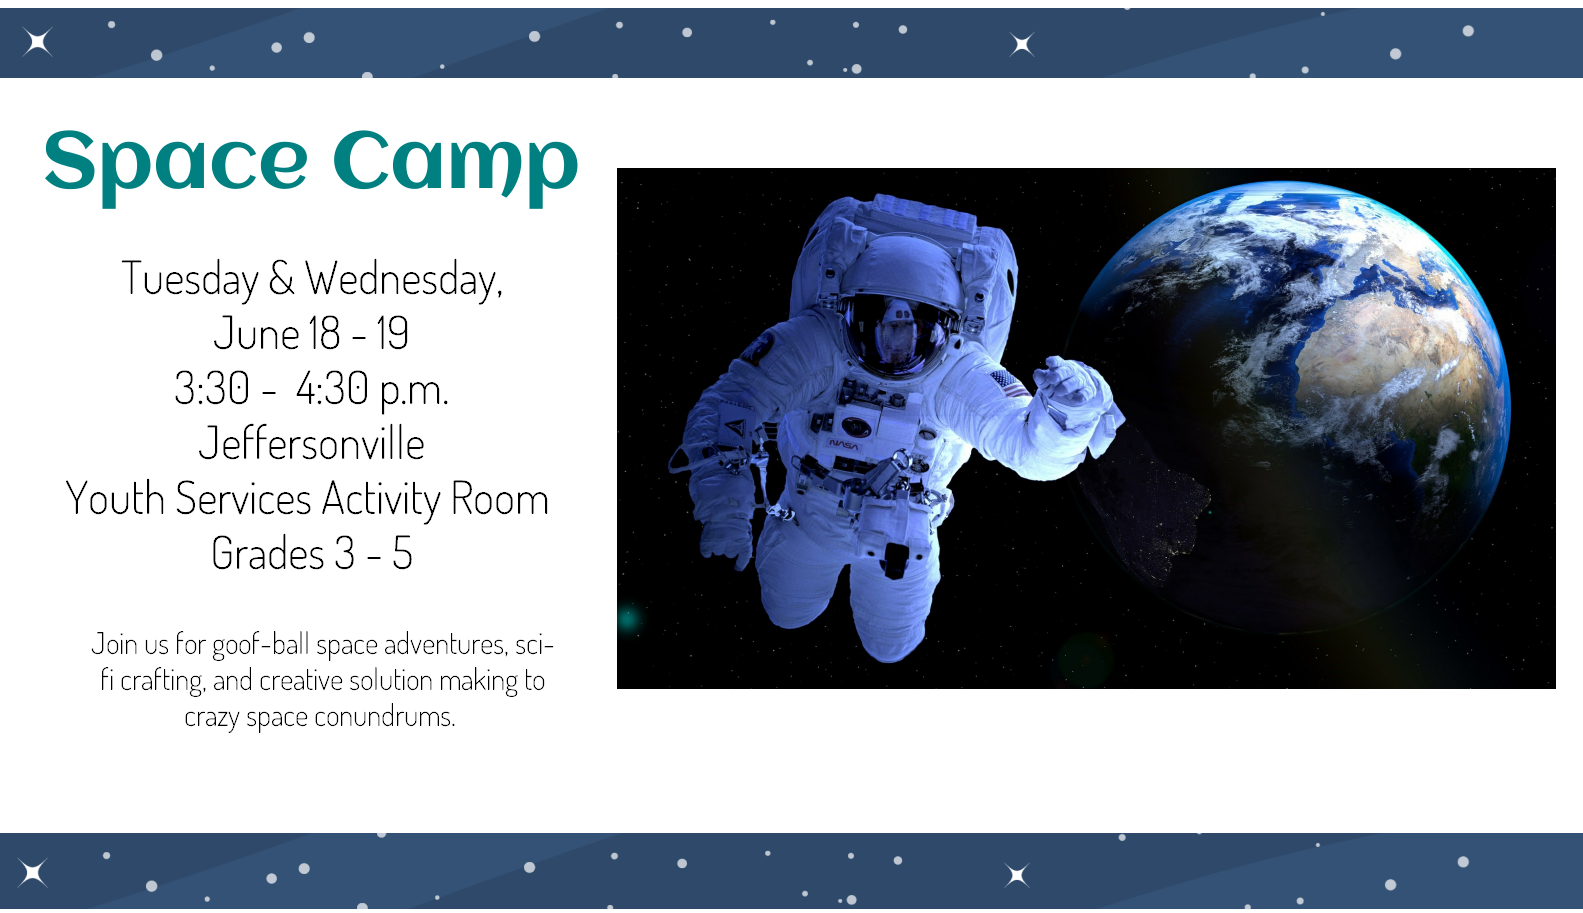 Flyer for Space Camp